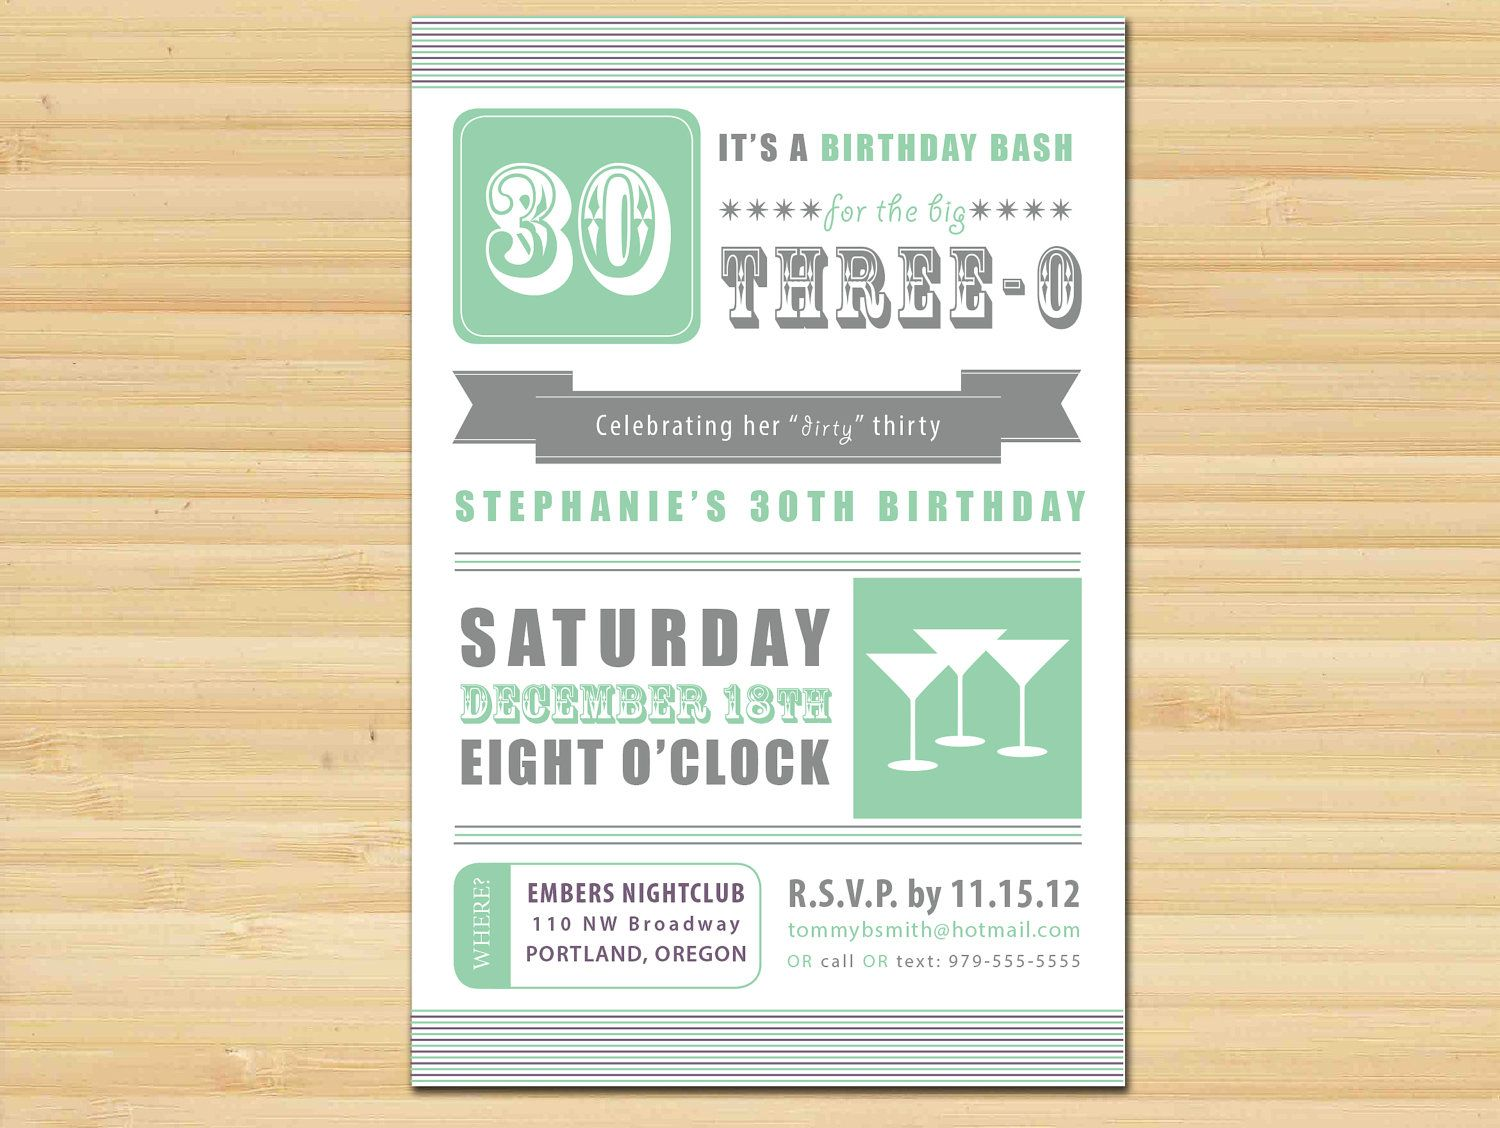 Hubbys 30th Birthday Invite Ideas